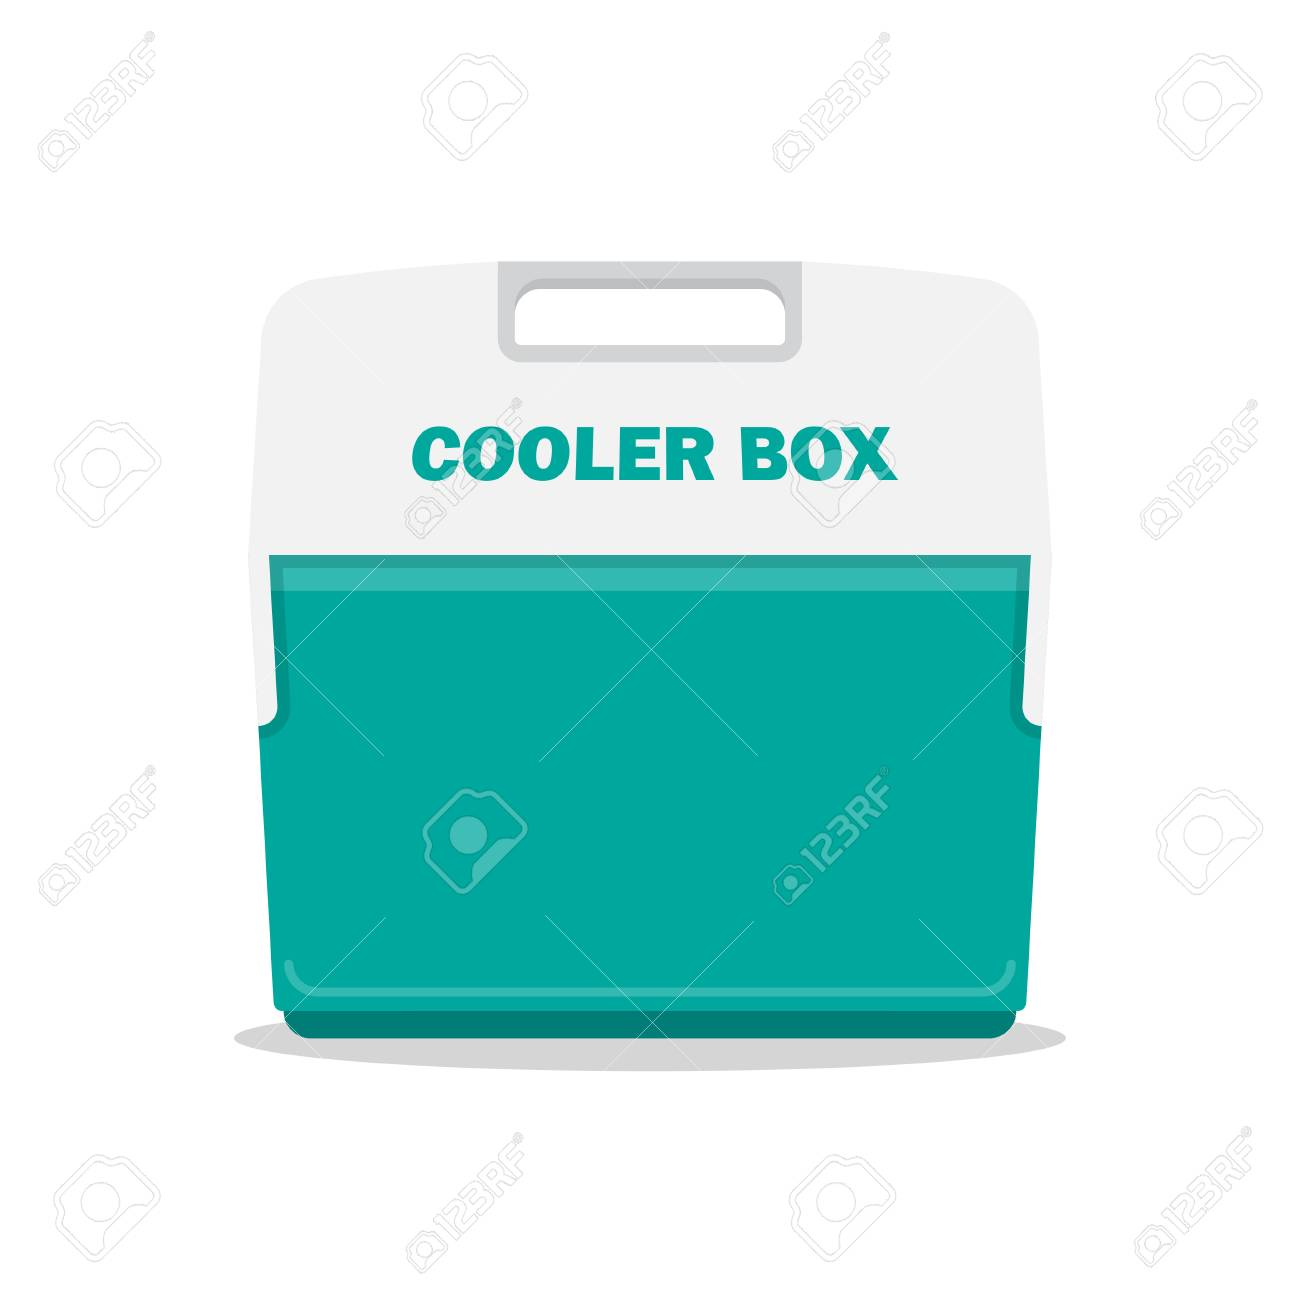 f96620d7cdc9 Handheld blue refrigerator, ice cooler for picnic or camping...